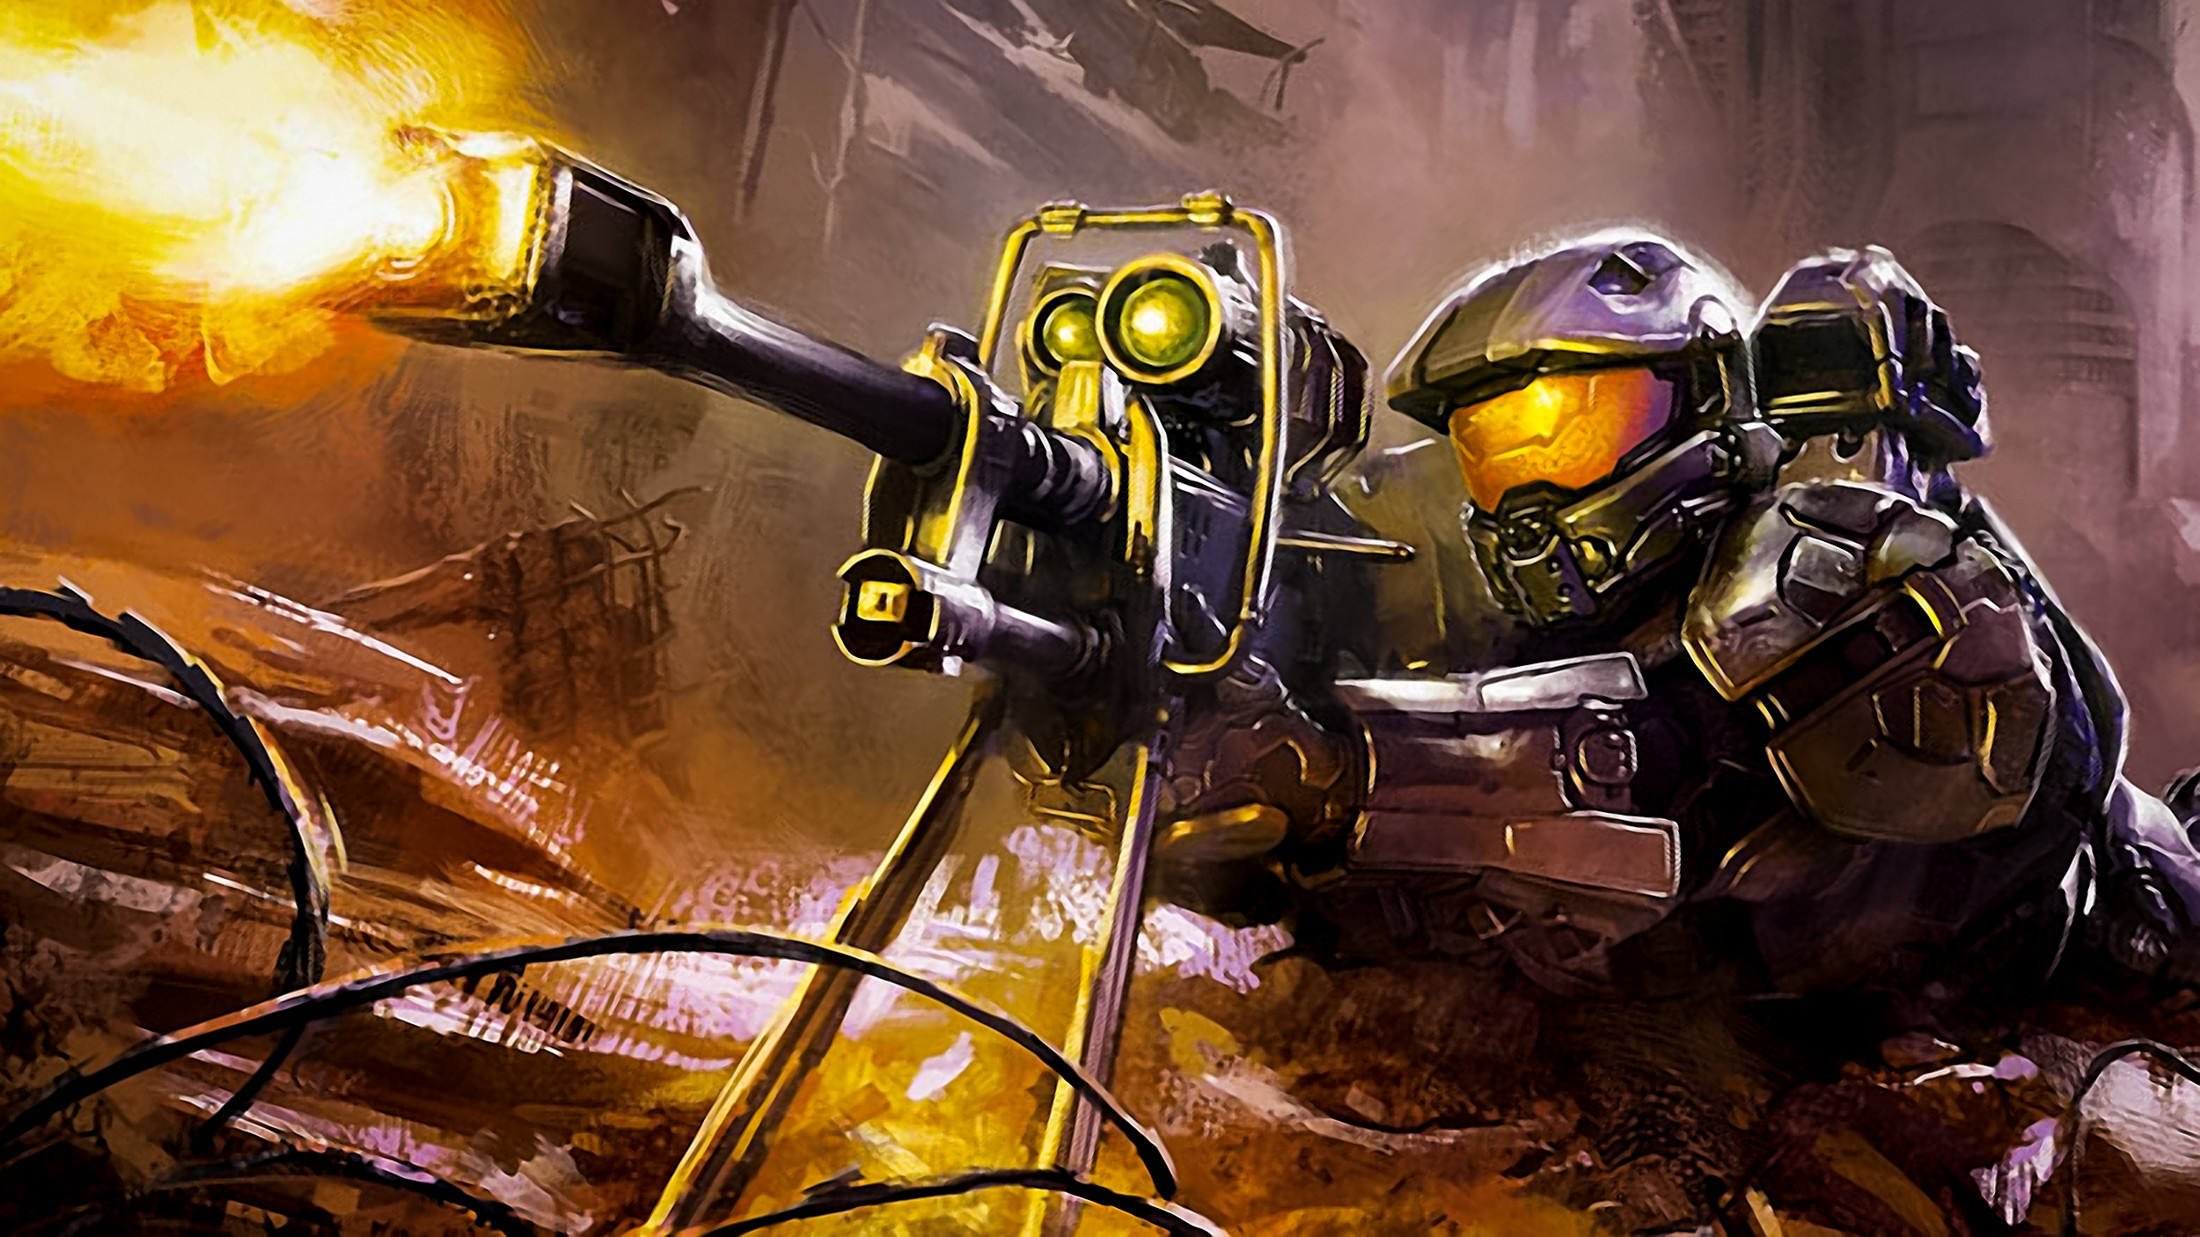 2200x1237 Halo Master Chief Wallpapers Amazing Wallpaperz | HD Wallpapers | Pinterest  | Hd wallpaper and Wallpaper